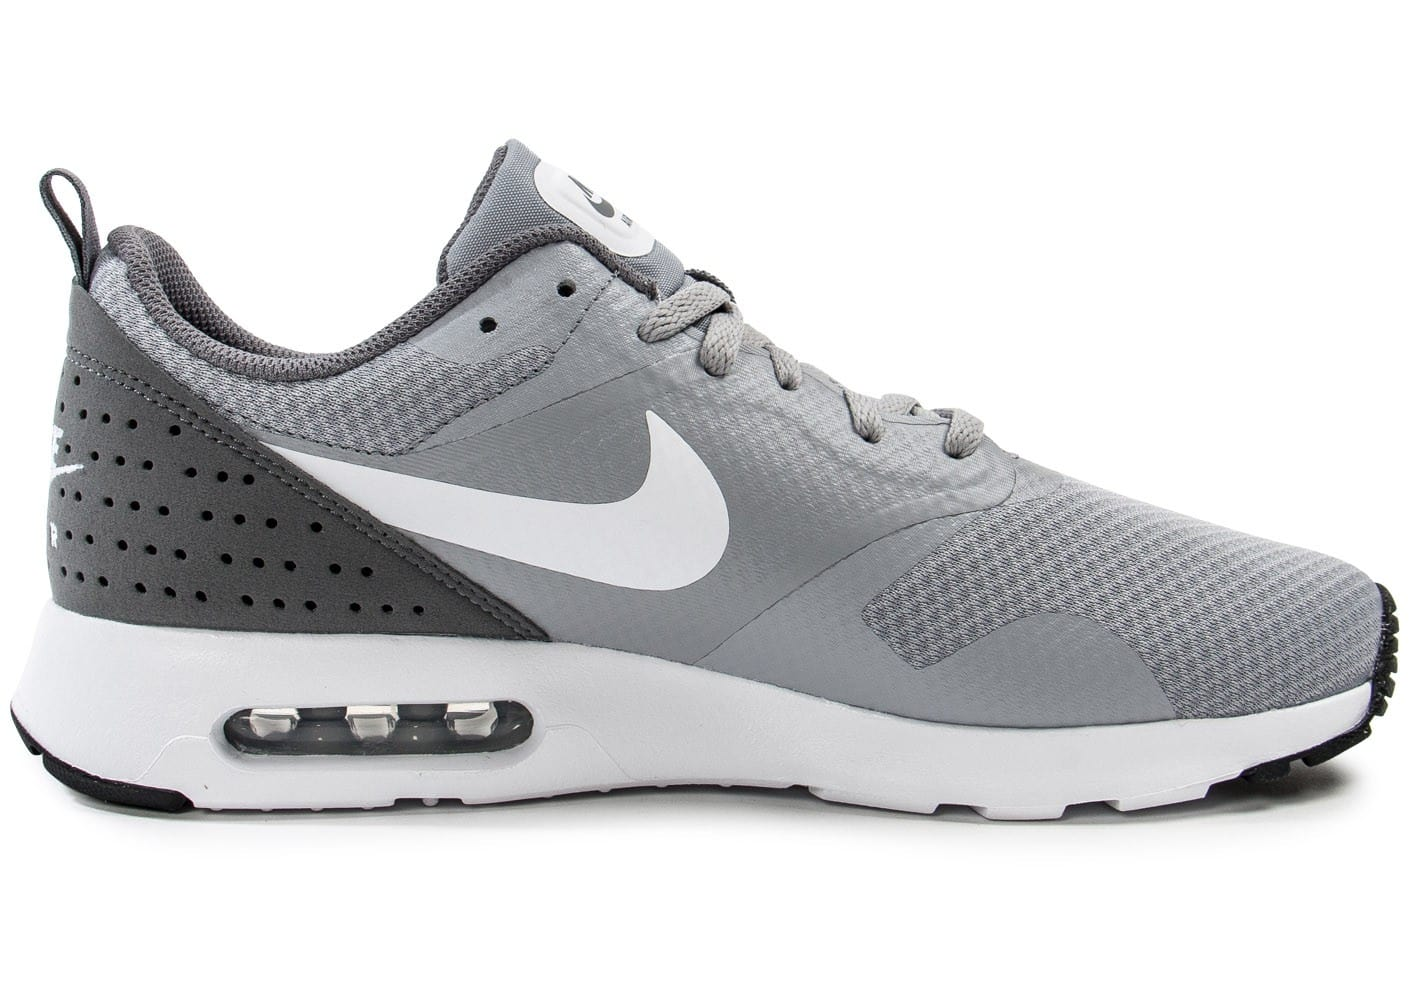 nike air max tavas grise chaussures homme chausport. Black Bedroom Furniture Sets. Home Design Ideas